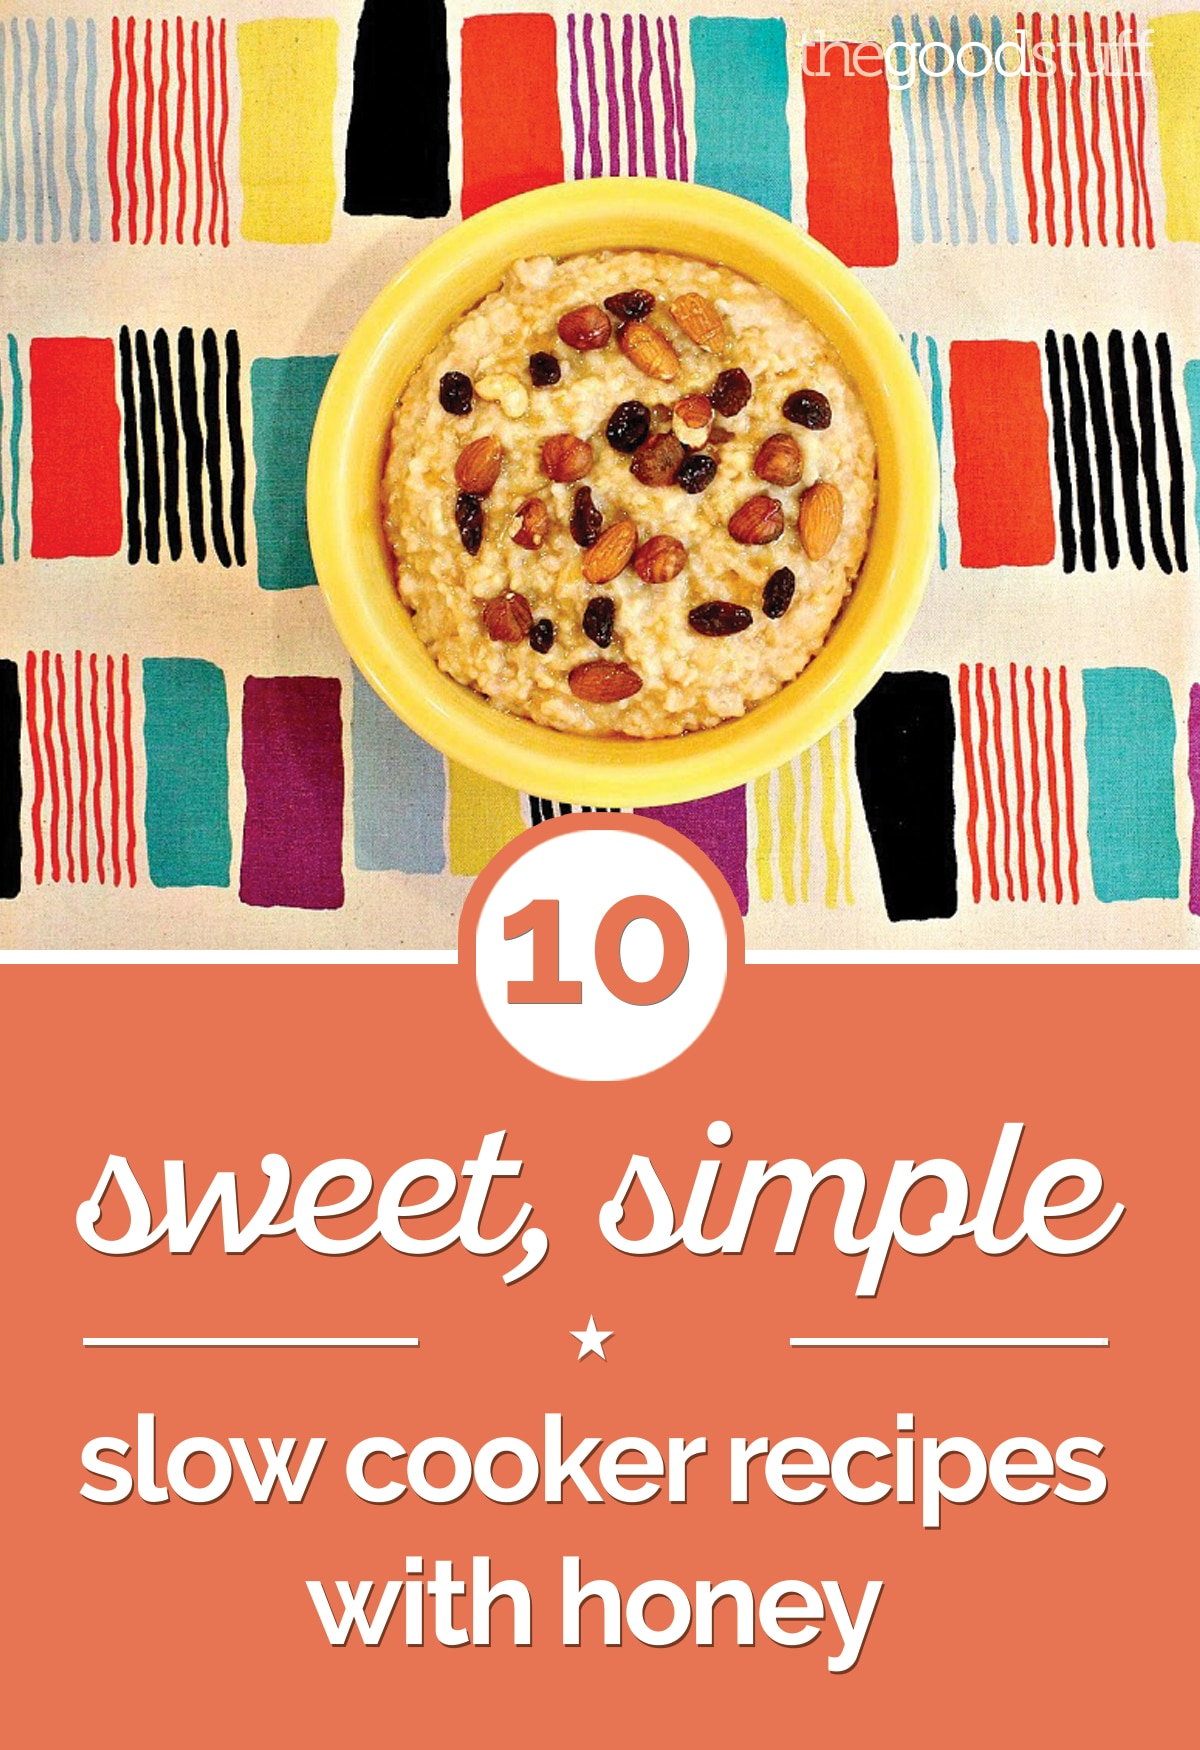 10 Sweet, Simple Slow Cooker Recipes with Honey | thegoodstuff